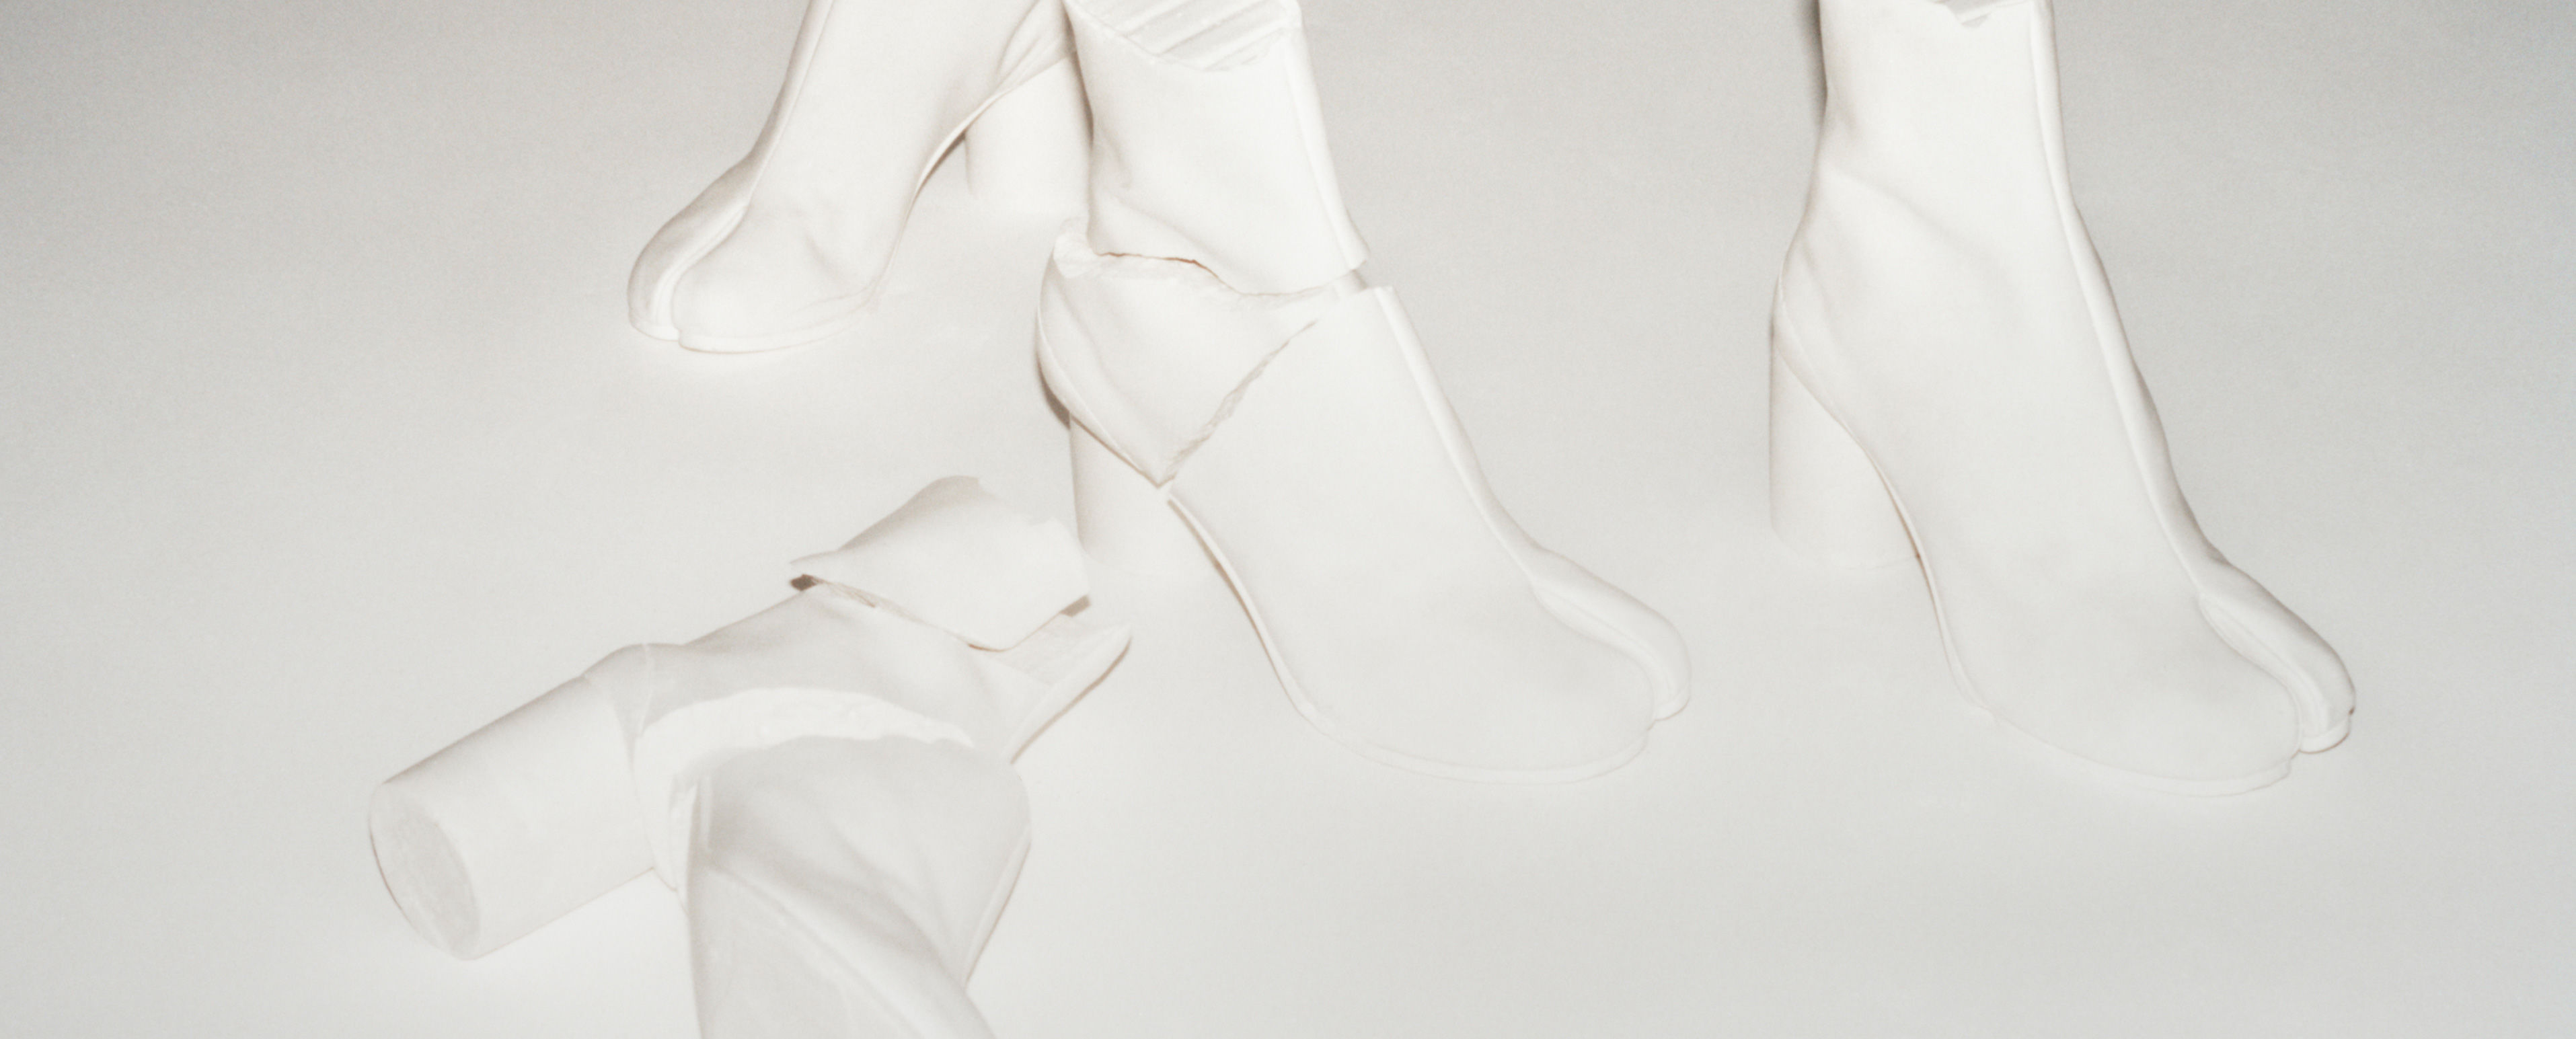 The Maison Margiela iconic Tabi shoe